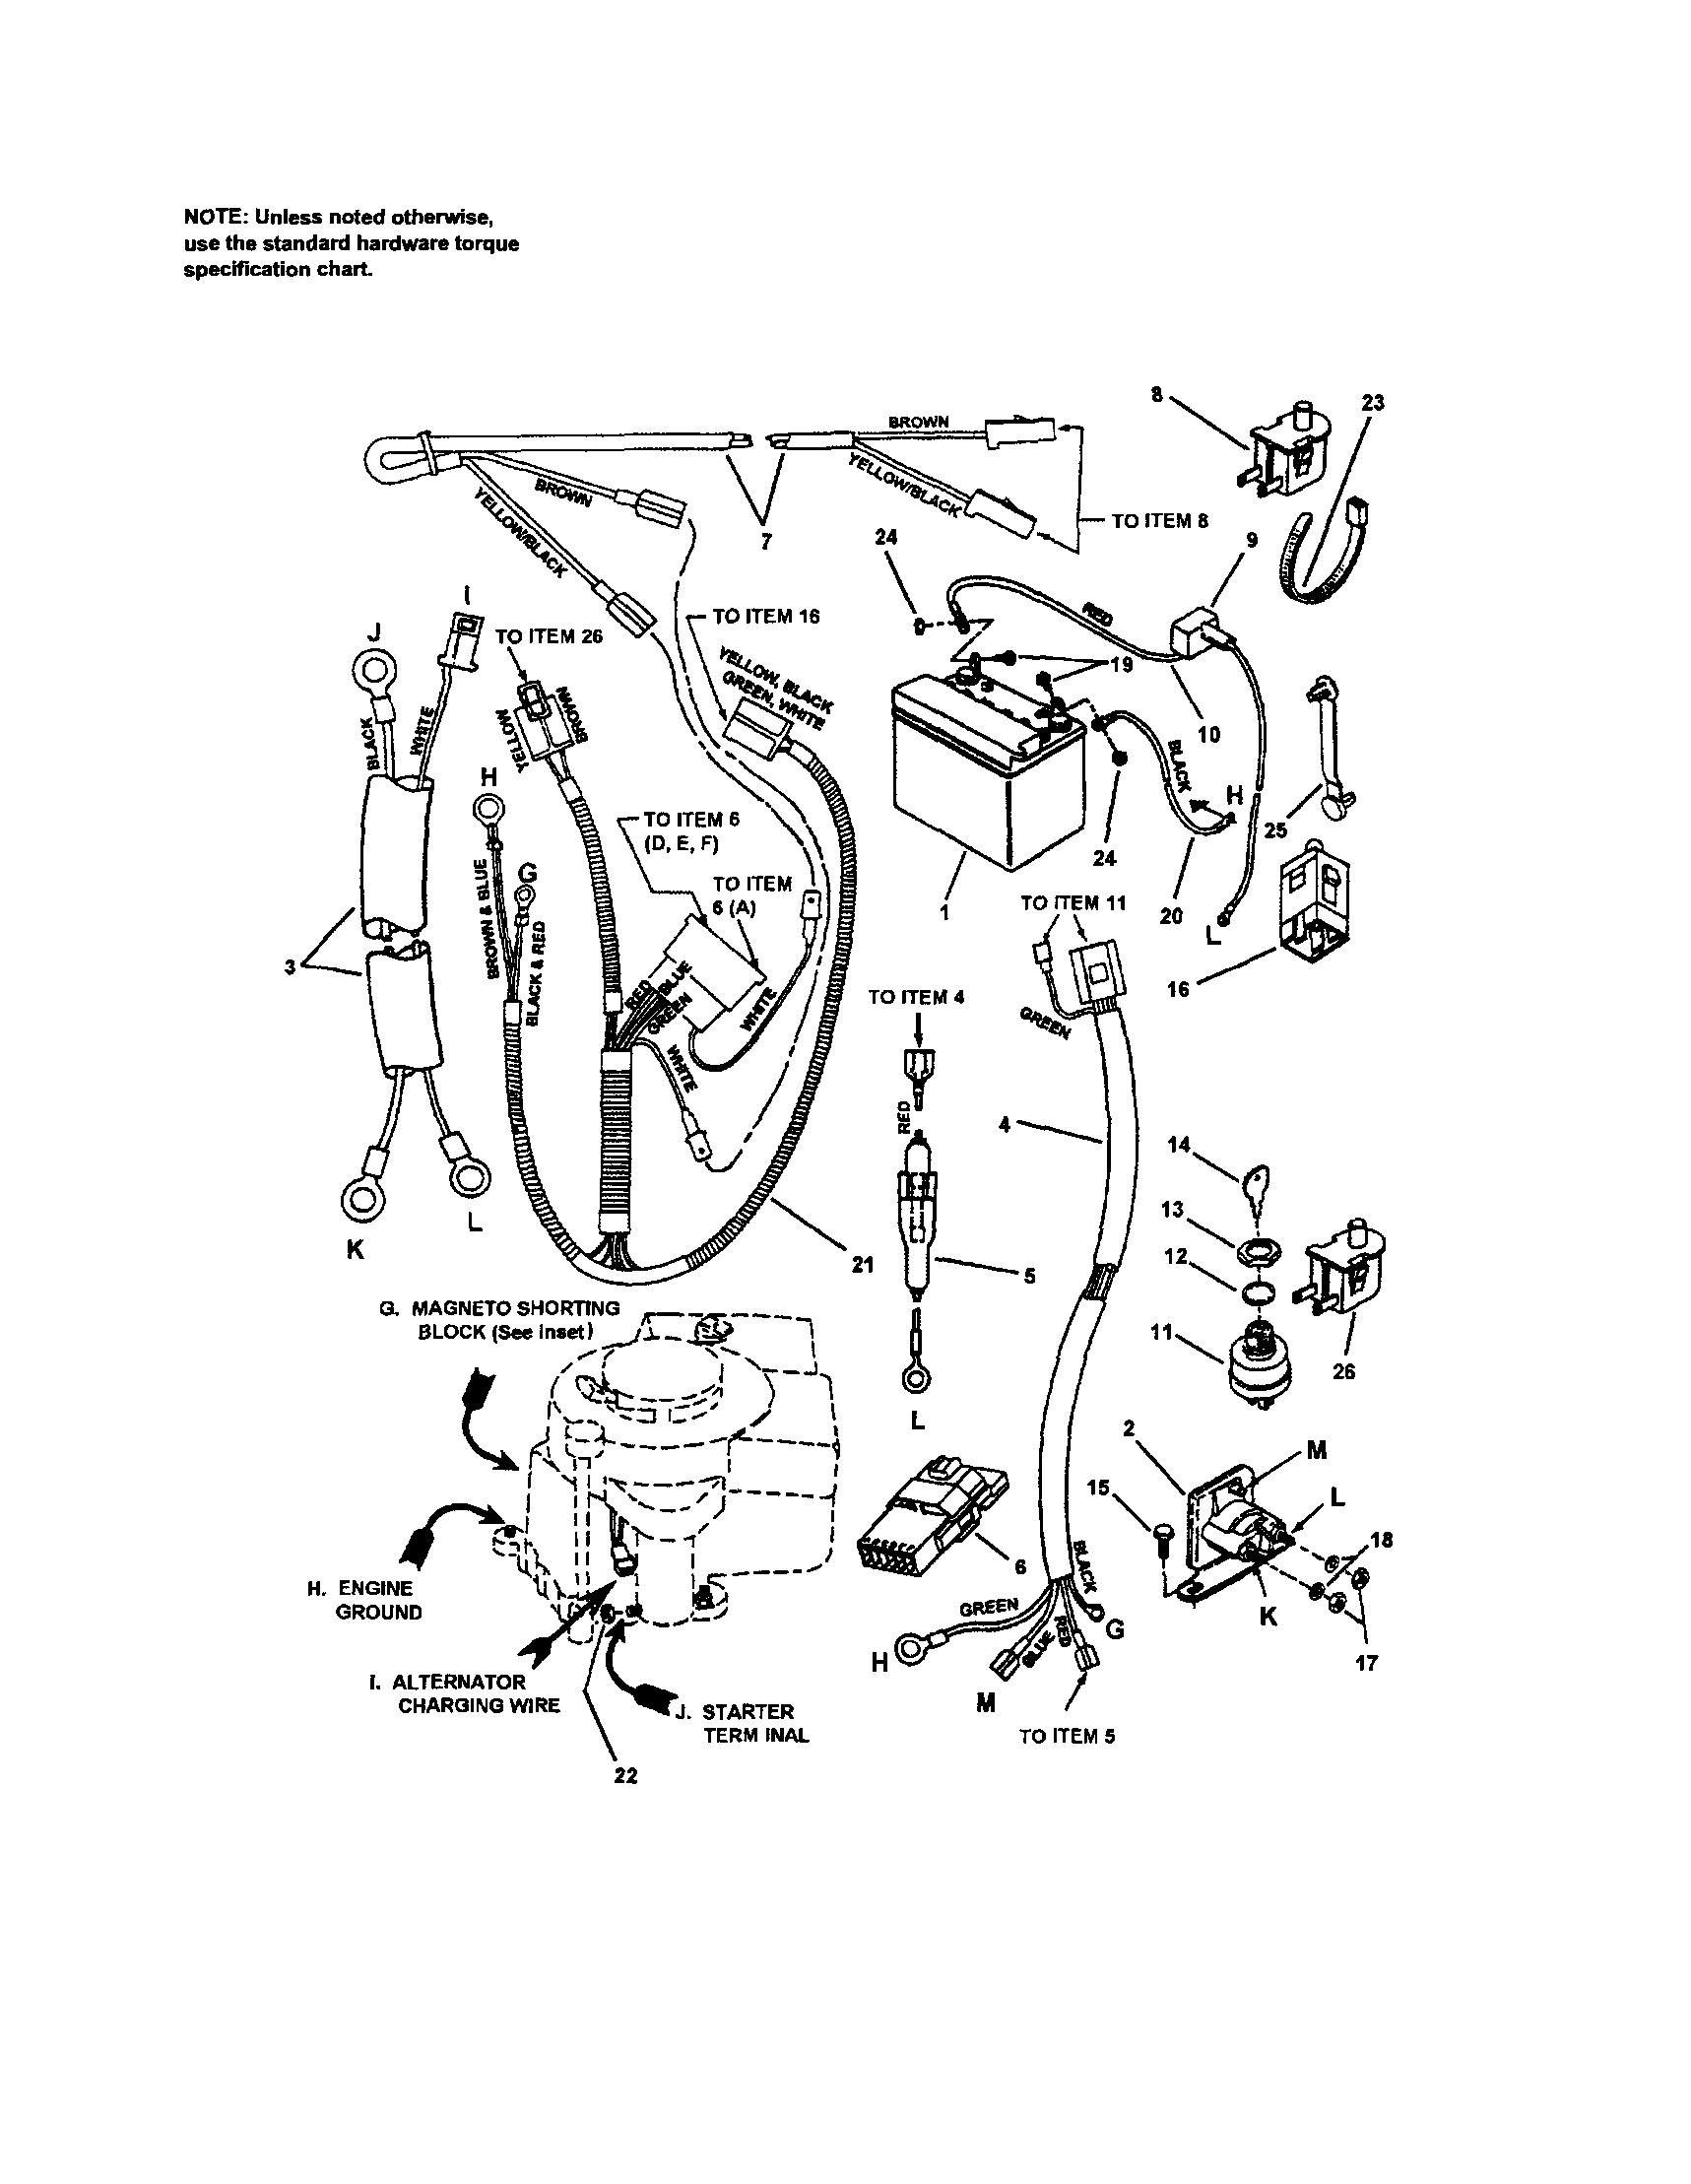 Briggs Stratton Engine Wiring Diagram Diagrams Schematics Hc2401he Honda And Intek Carburetor Images On Vanguard